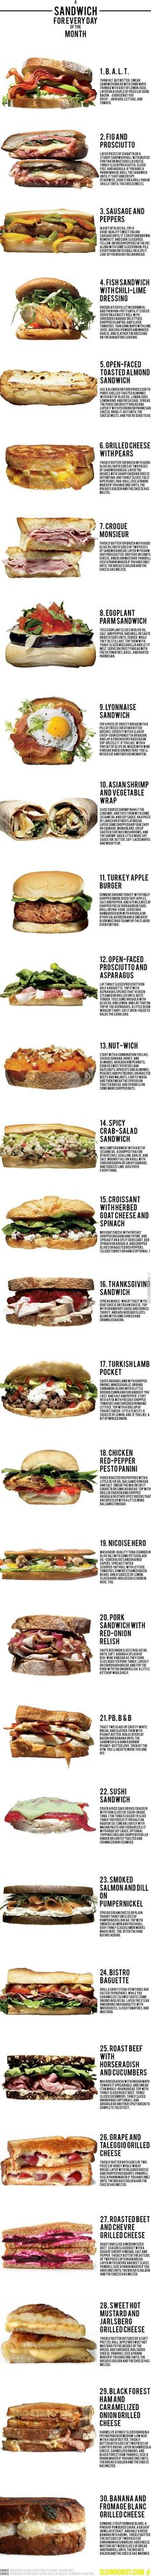 30 Delicious Sandwich Recipes For Every Day Of The Month | Huffington Post